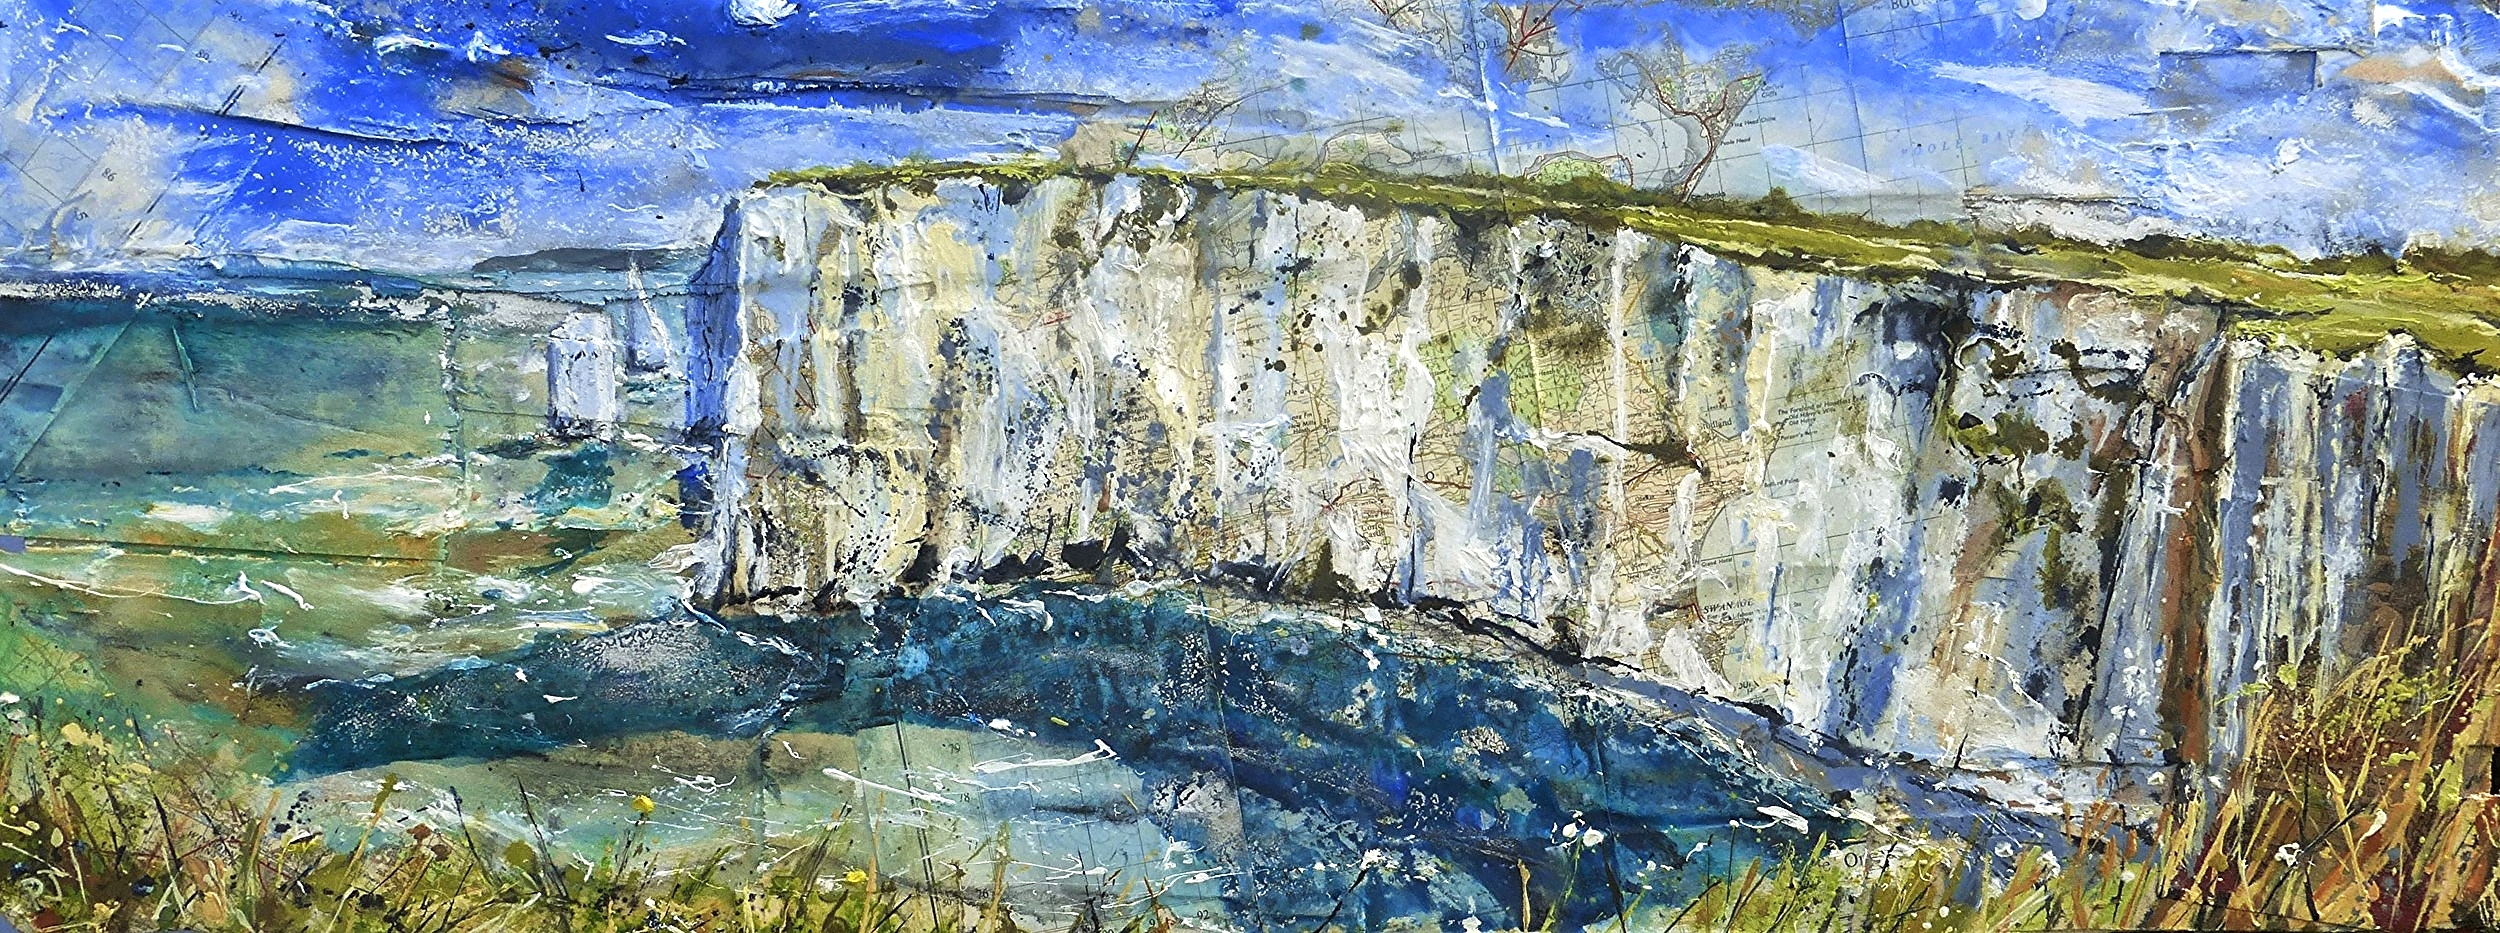 Parson's Barn and the Pinnacles, Purbeck Coast, Dorset. Oil, acrylic and collage on wood.